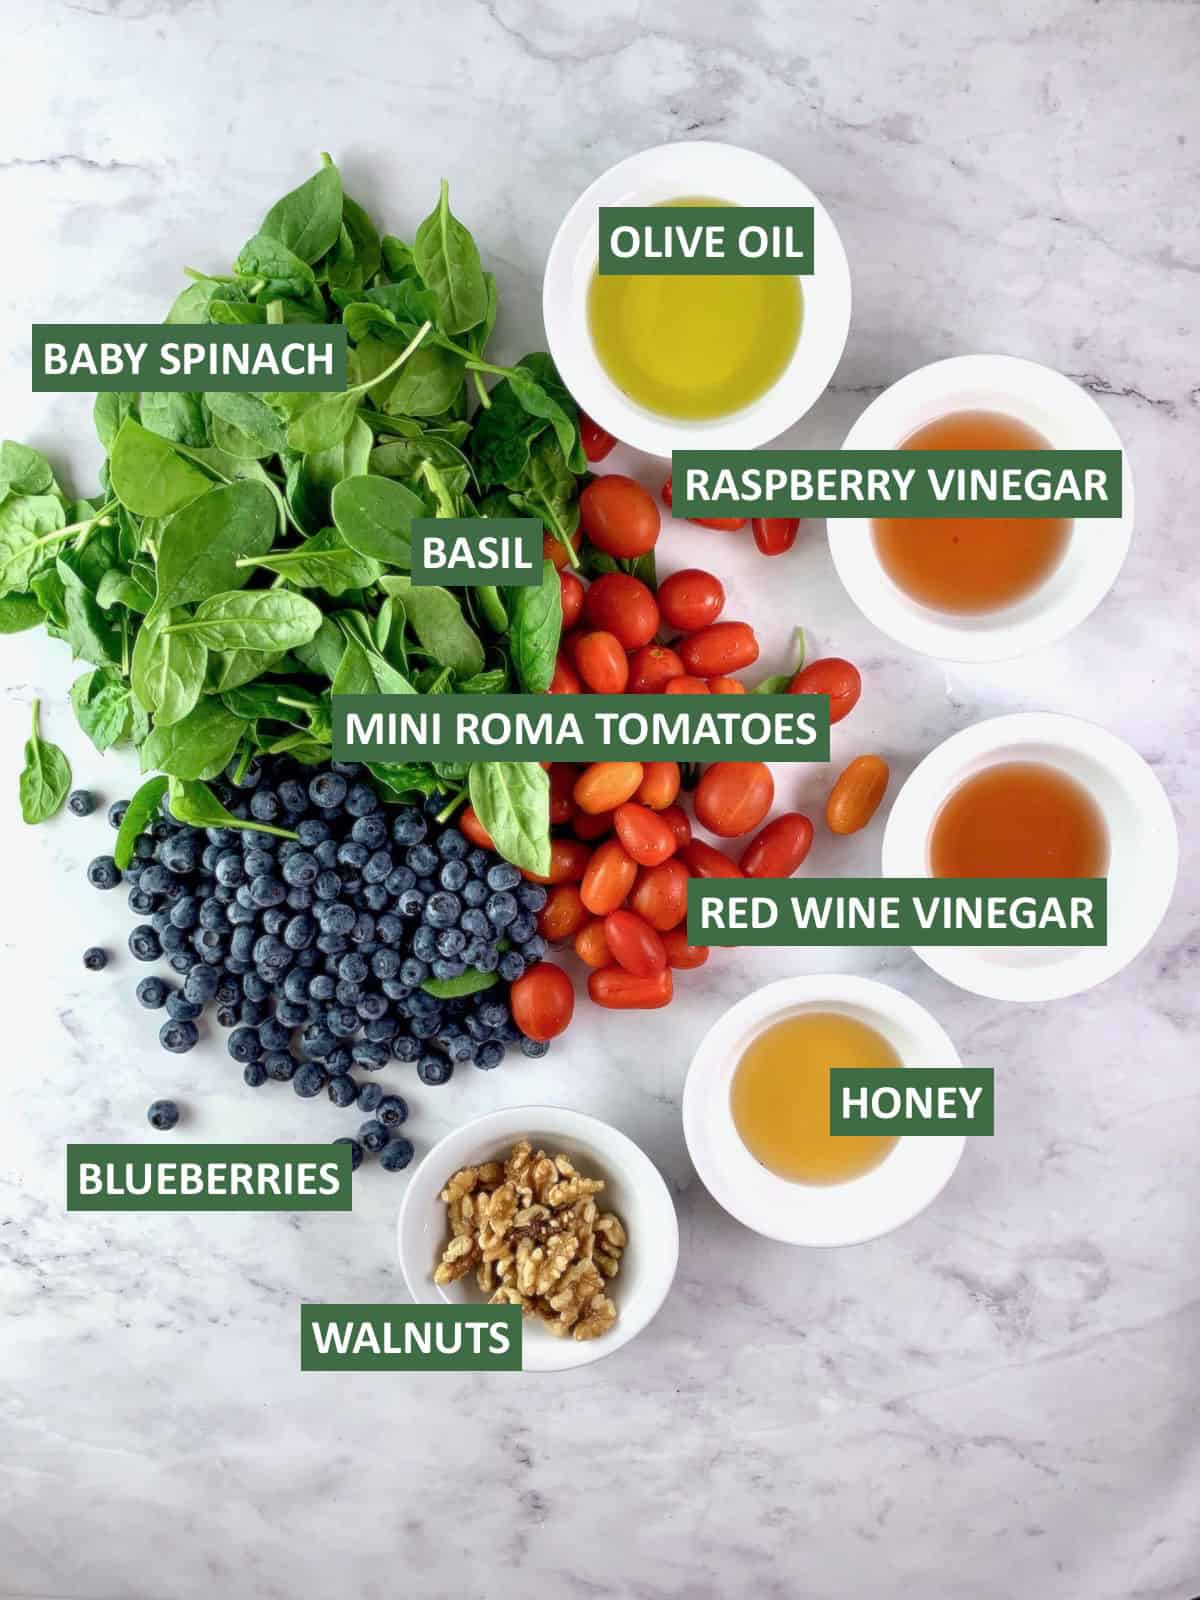 LABELLED INGREDIENTS NEEDED TO MAKE BASIL & TOMATO SALAD